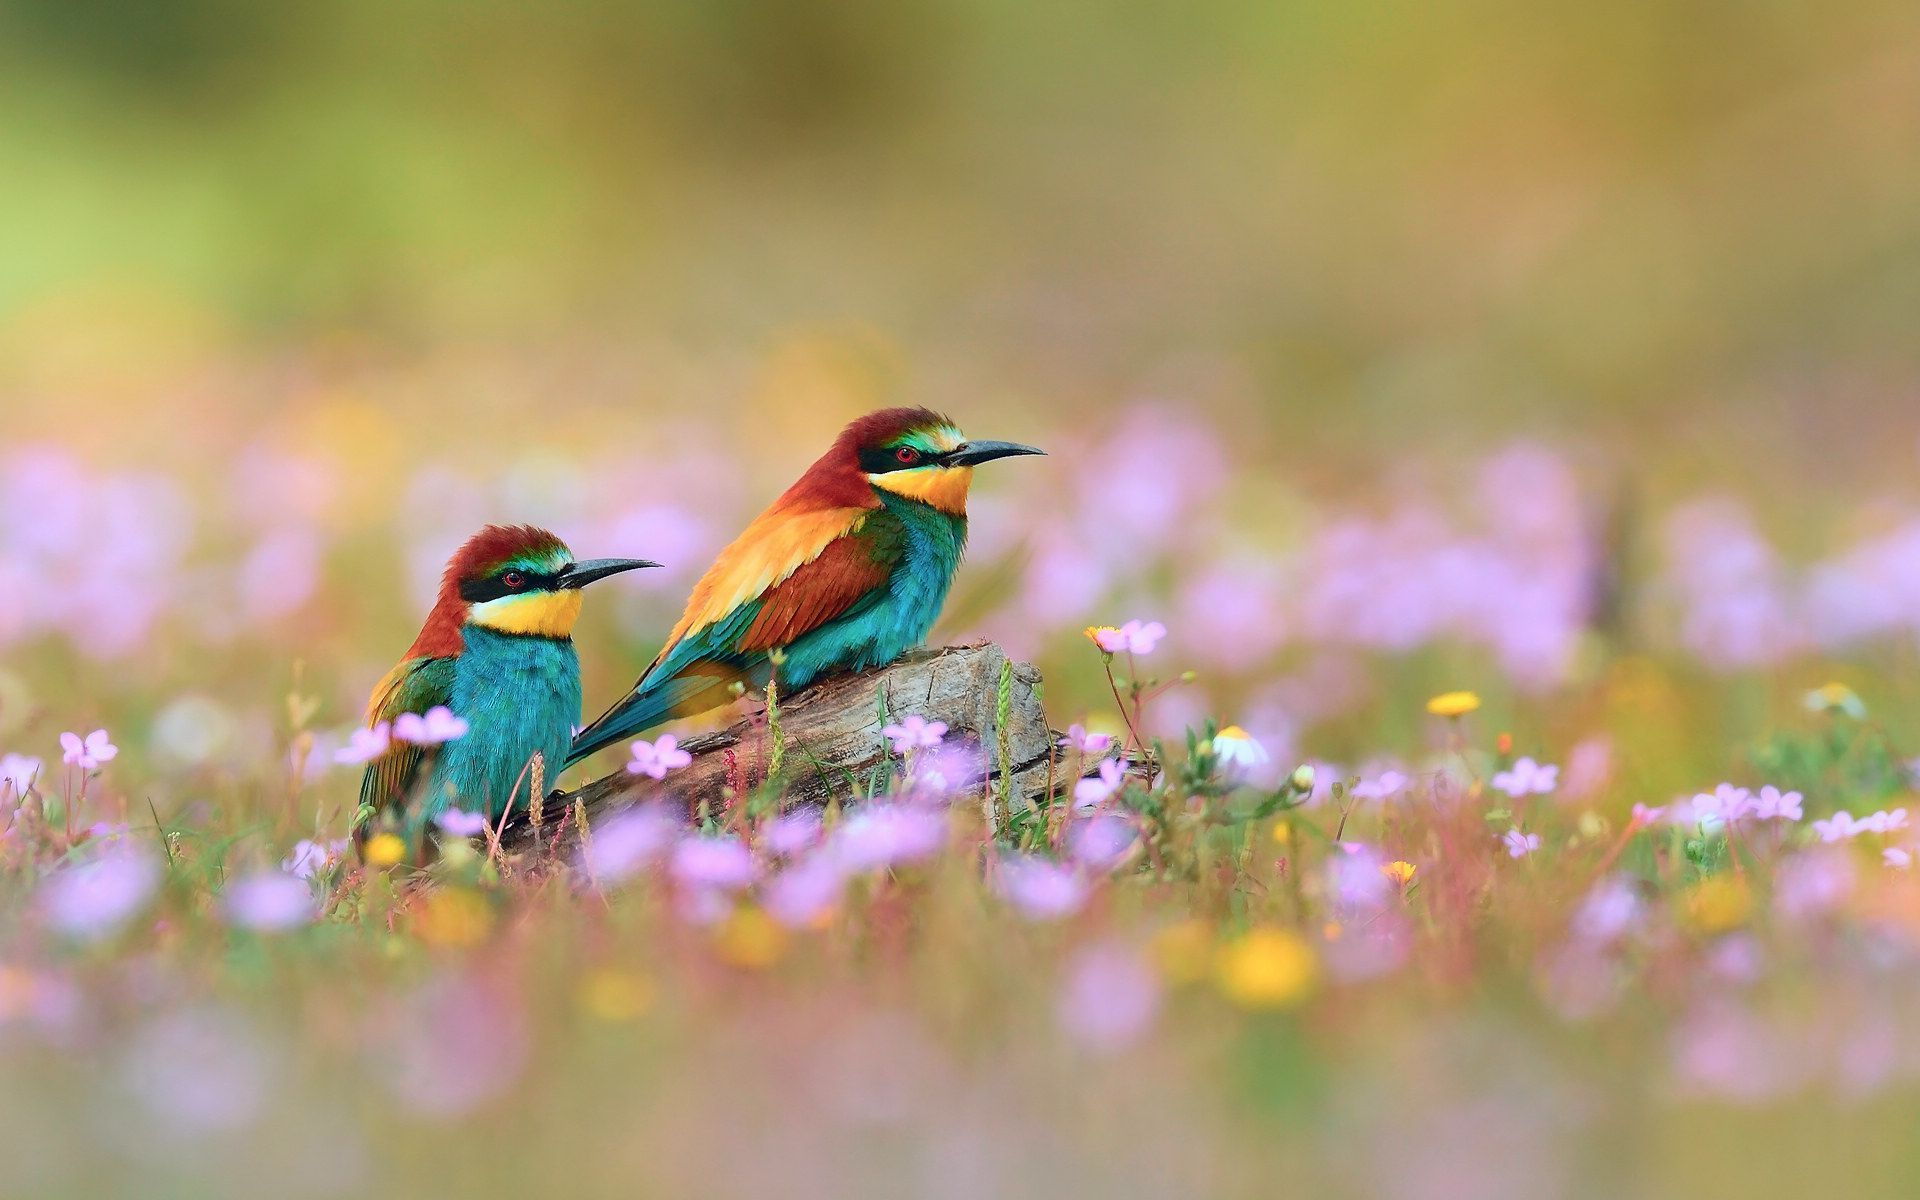 Spring Flowers And Birds Wallpaper Pictures 5 Hd Wallpapers Cute Animal Photos Cute Birds Birds Wallpaper Hd